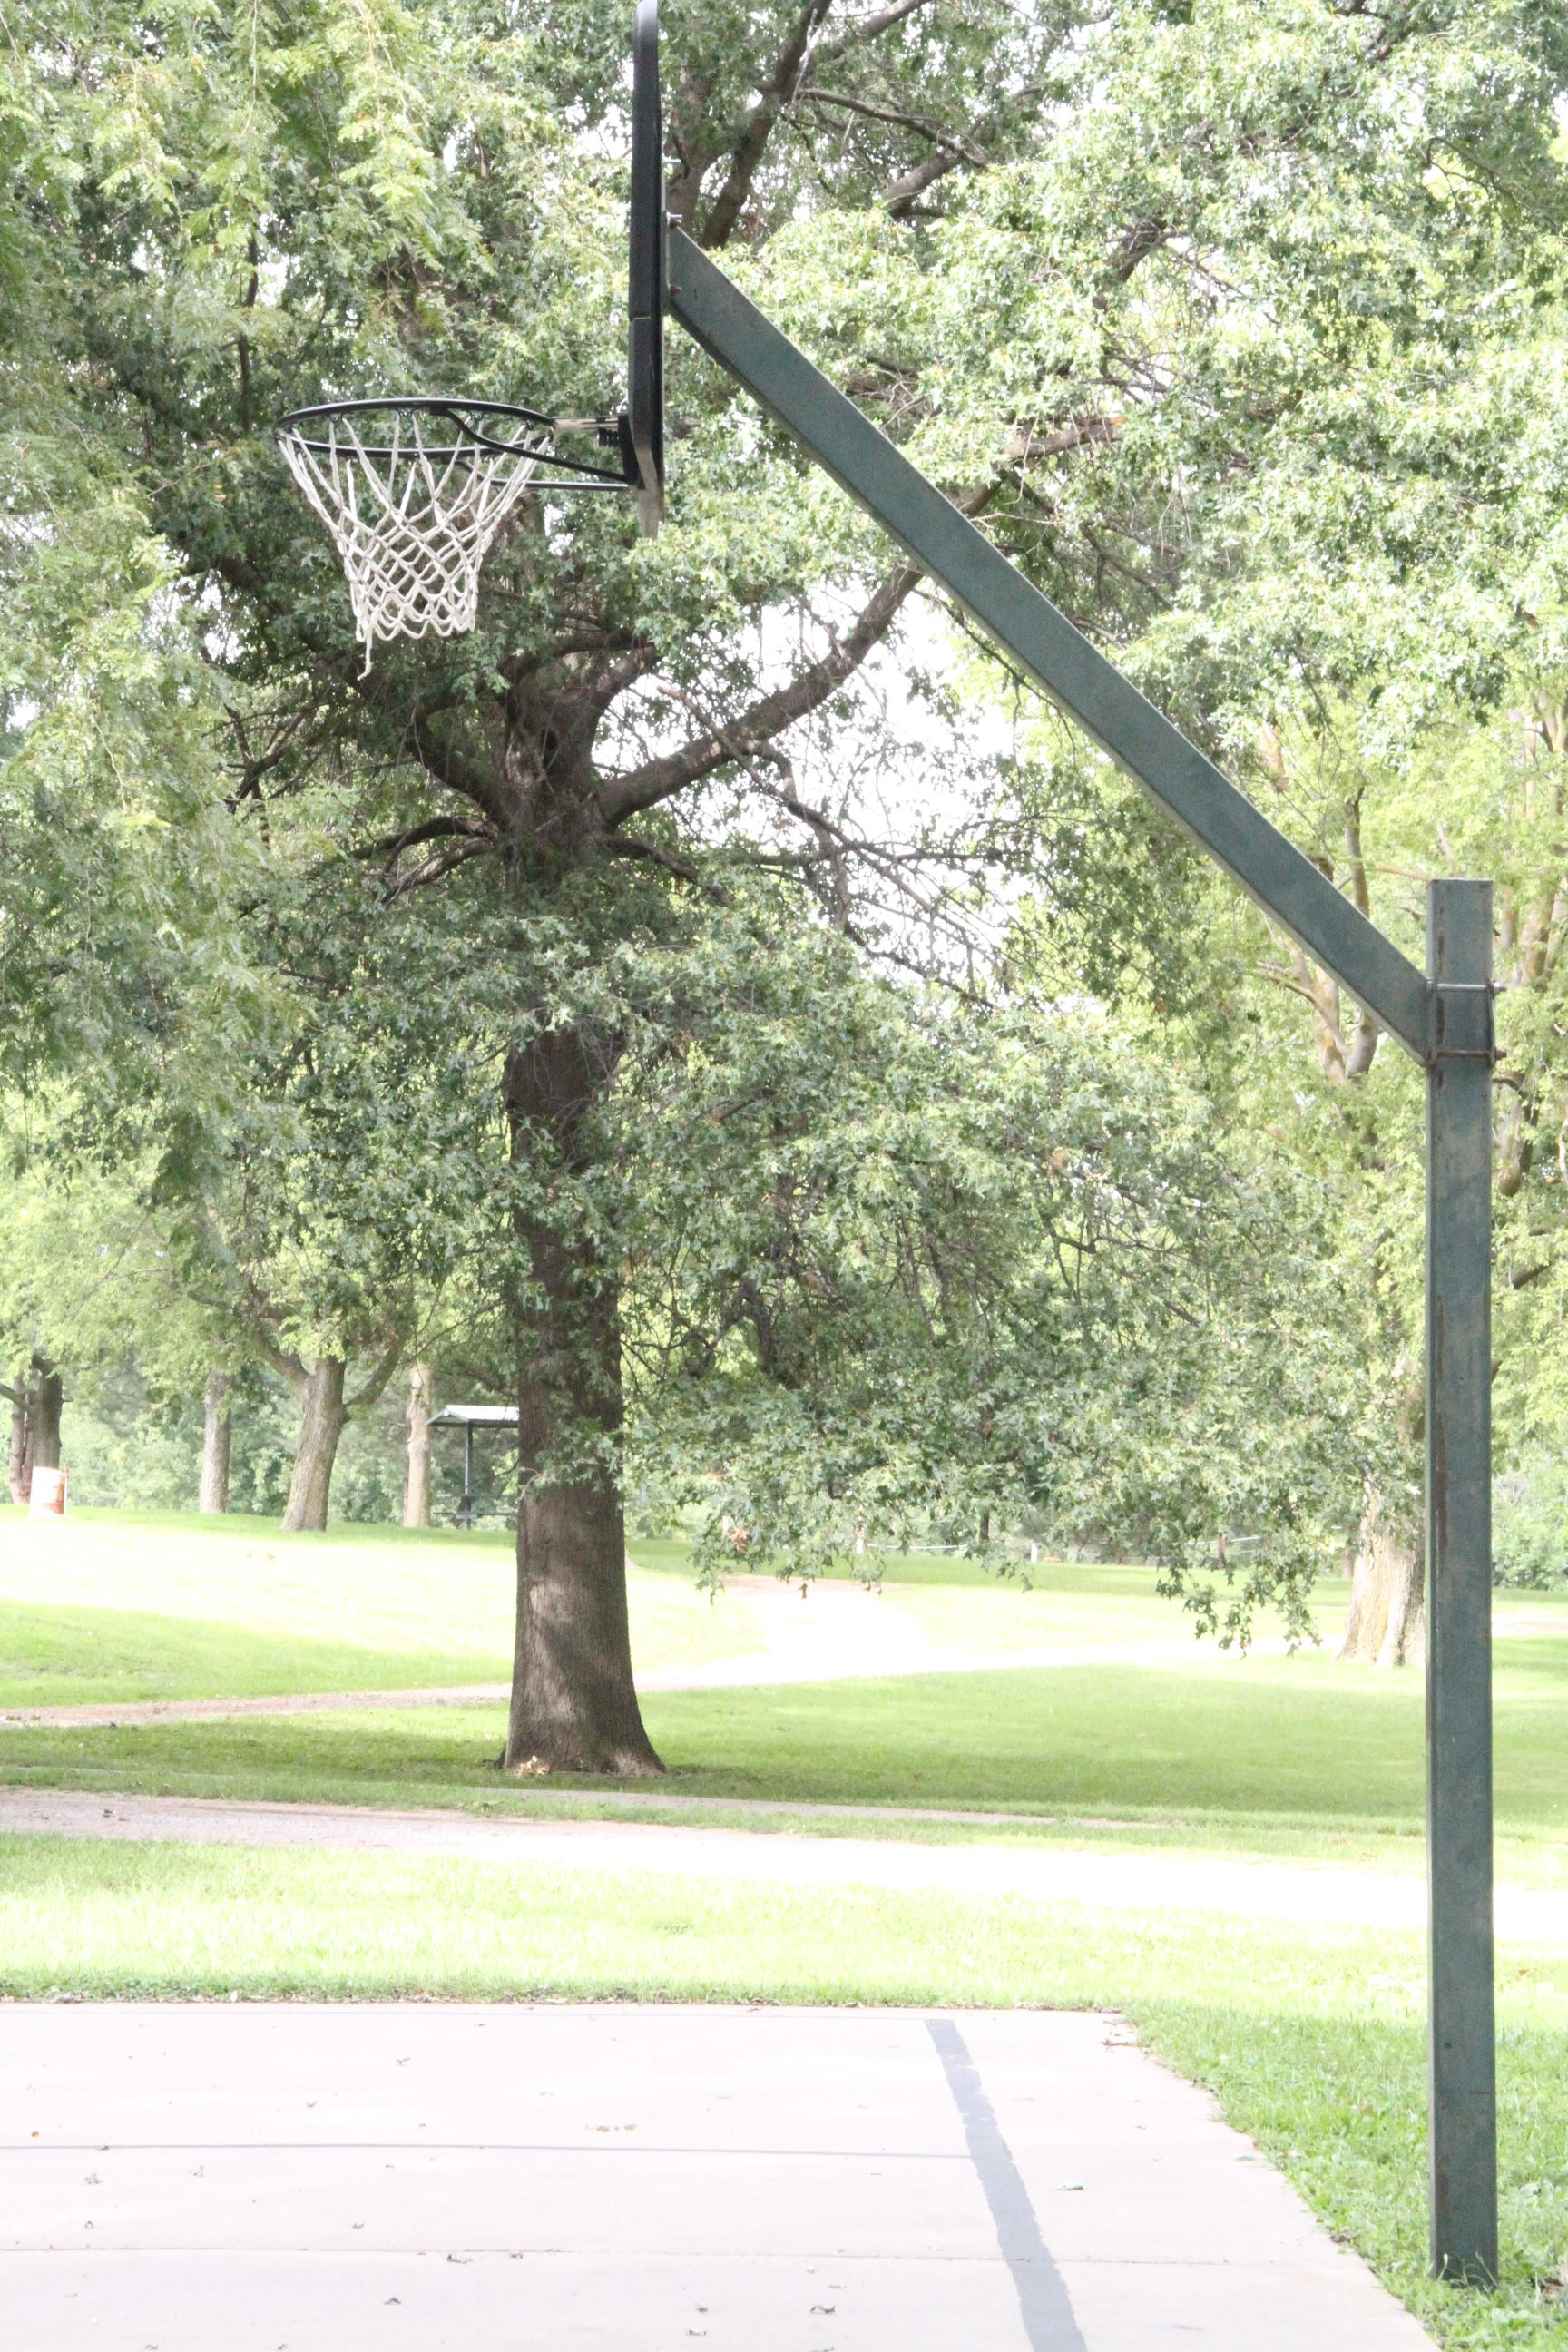 Basketball Hoop in Willard Park